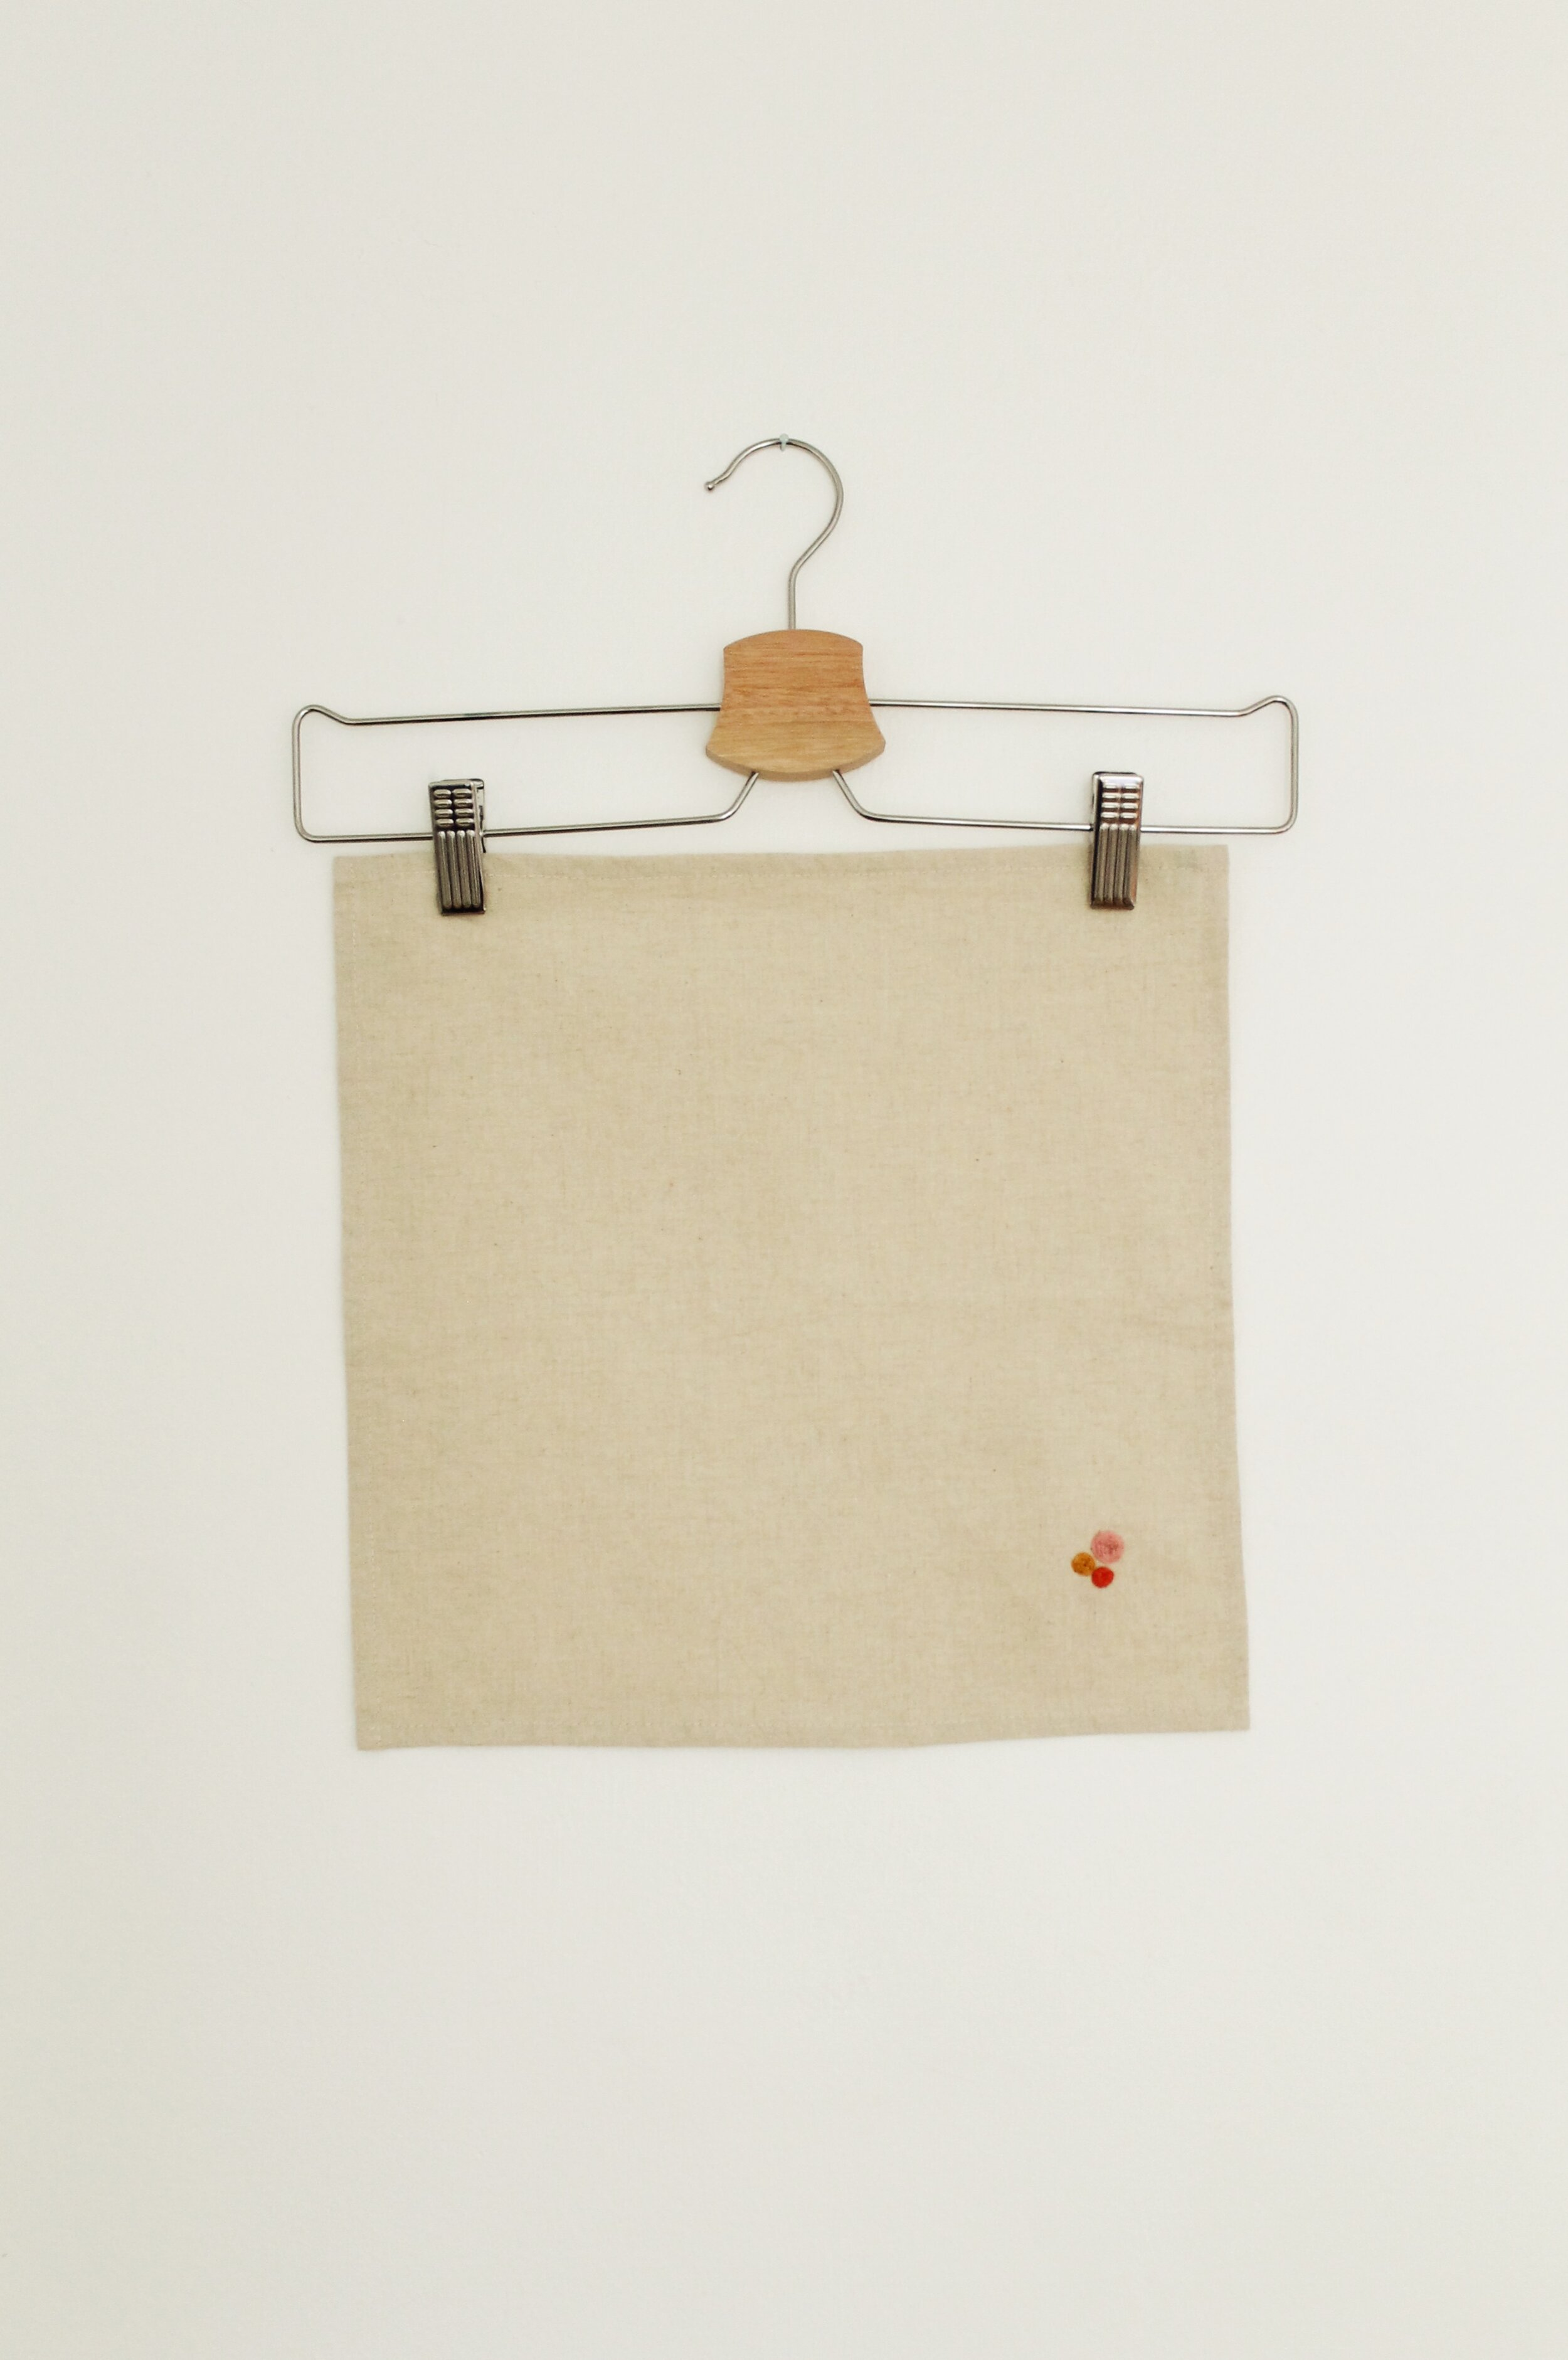 diy not your thing? you can also purchase this already embroidered hanky  here .